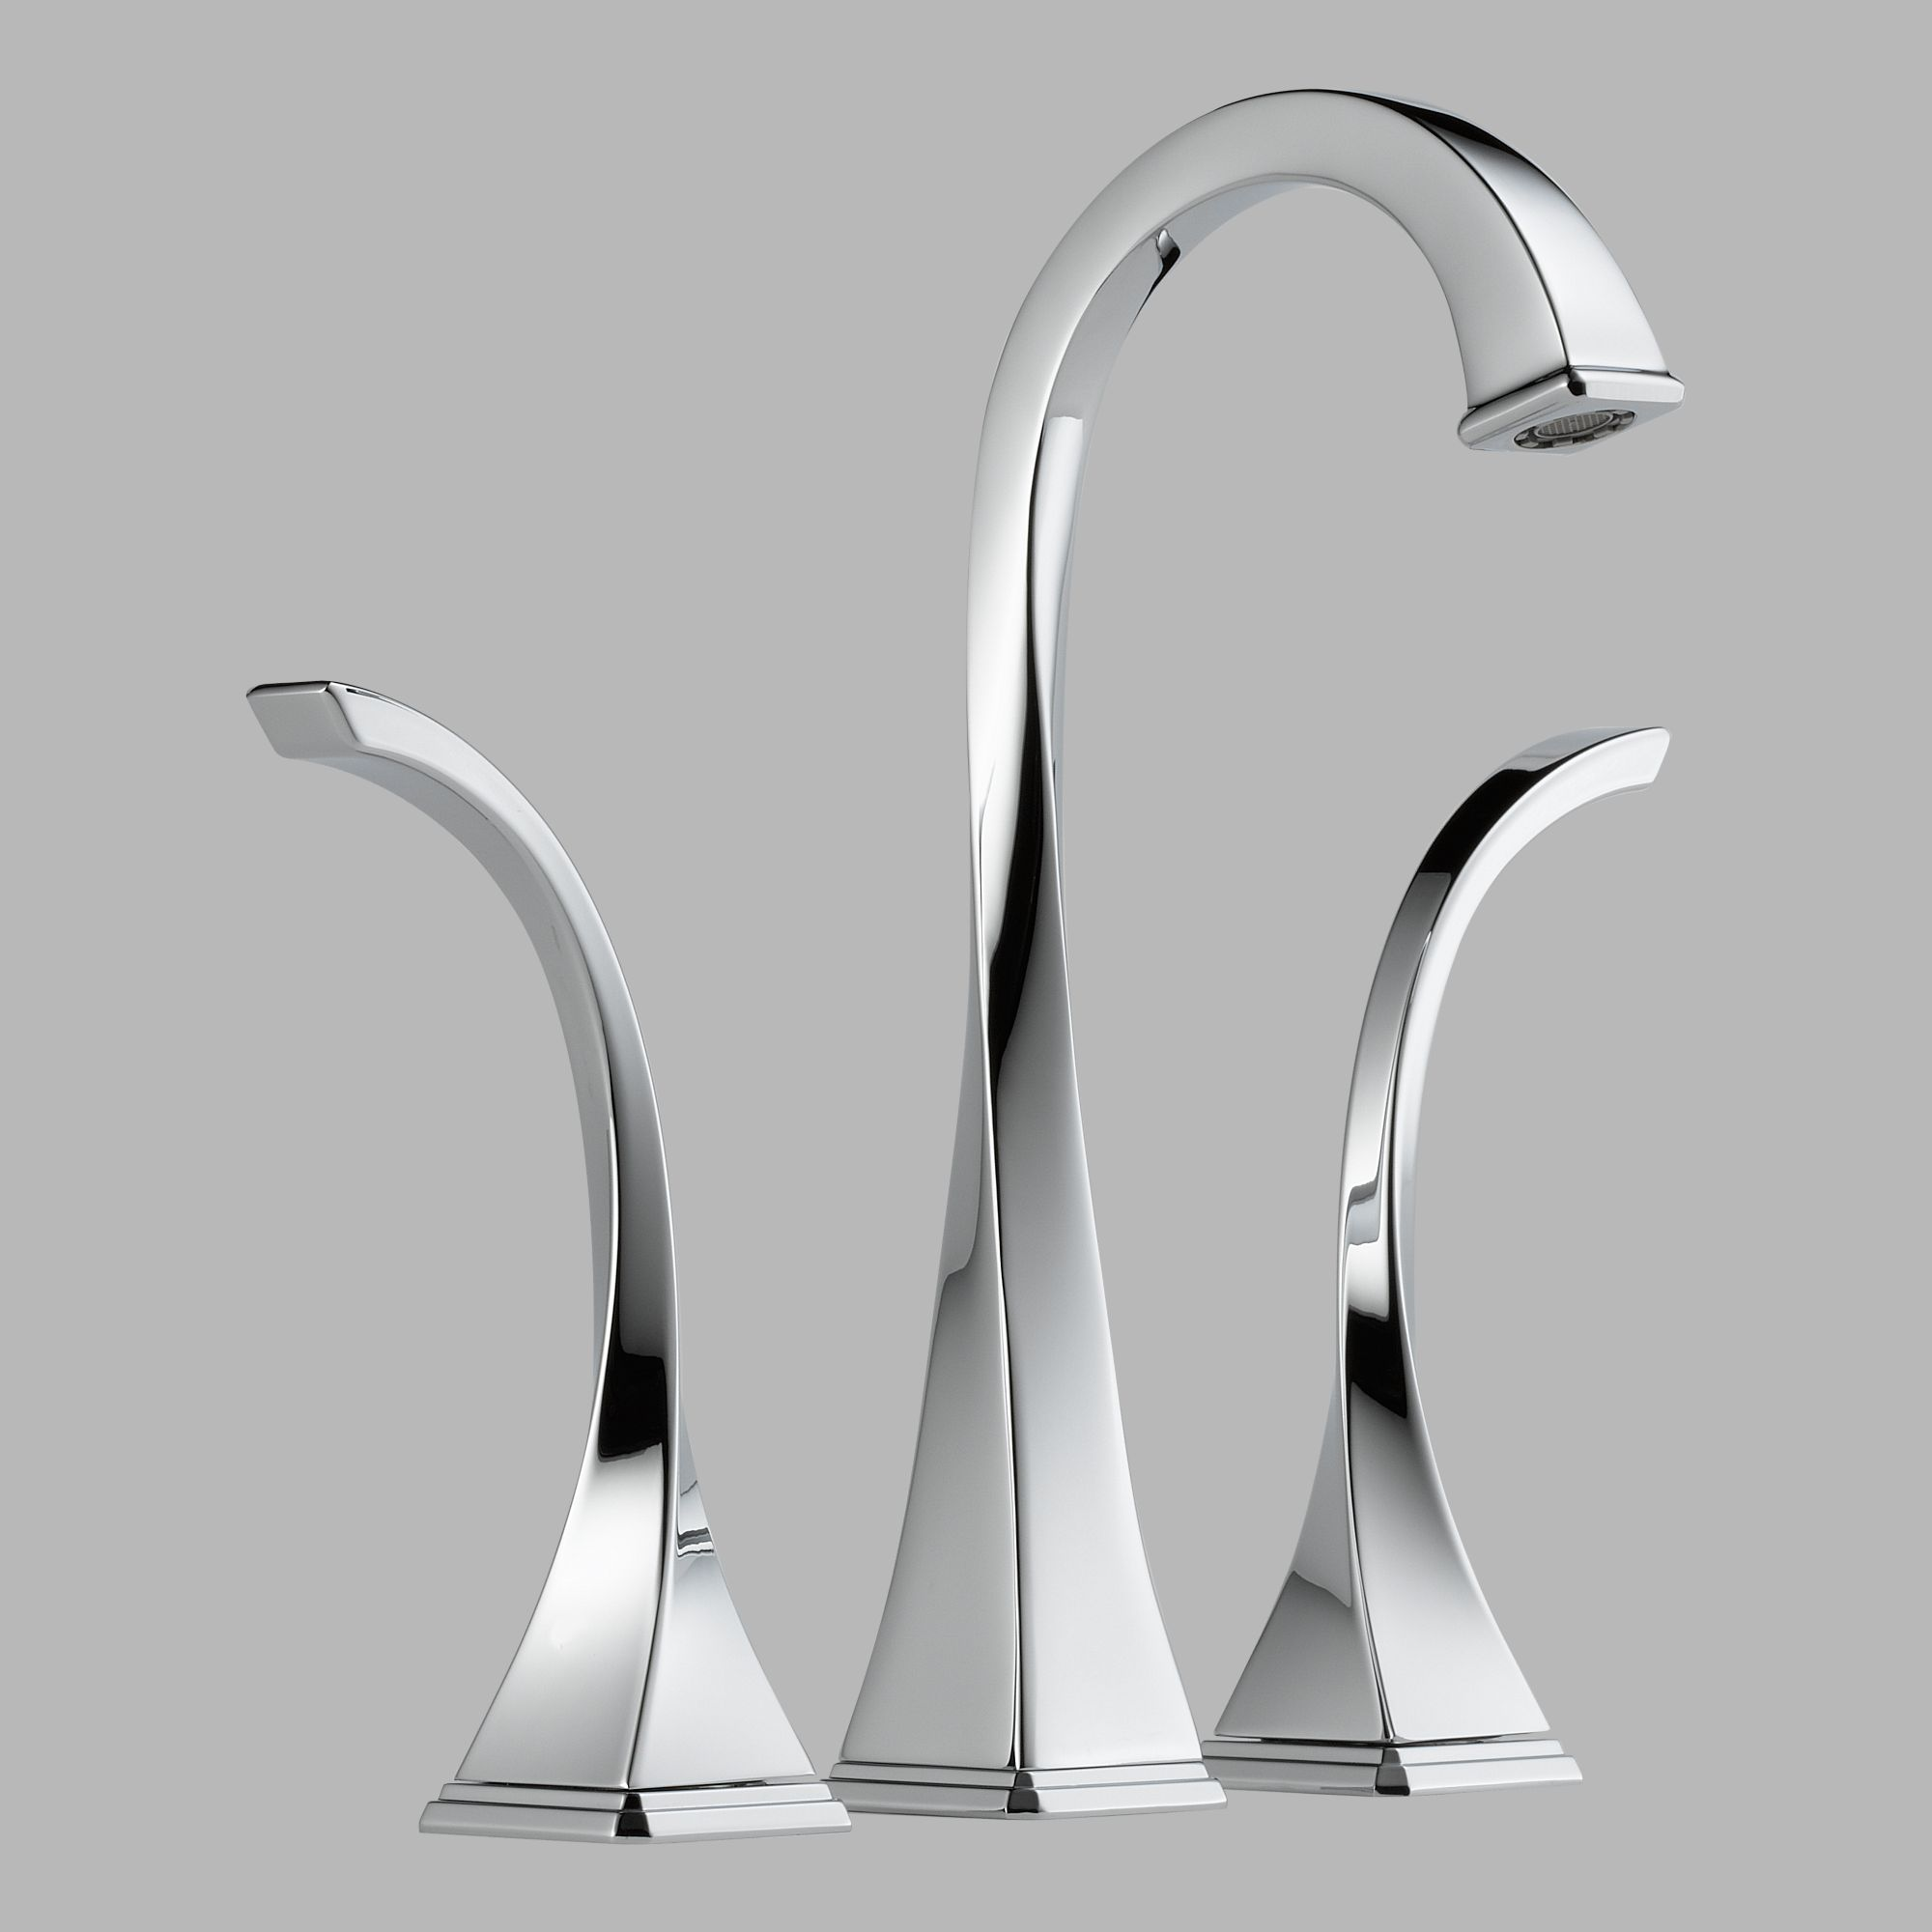 high end kitchen faucets Bathroom Luxury Kitchen Taps High End Kitchen Faucets Watermark Faucets